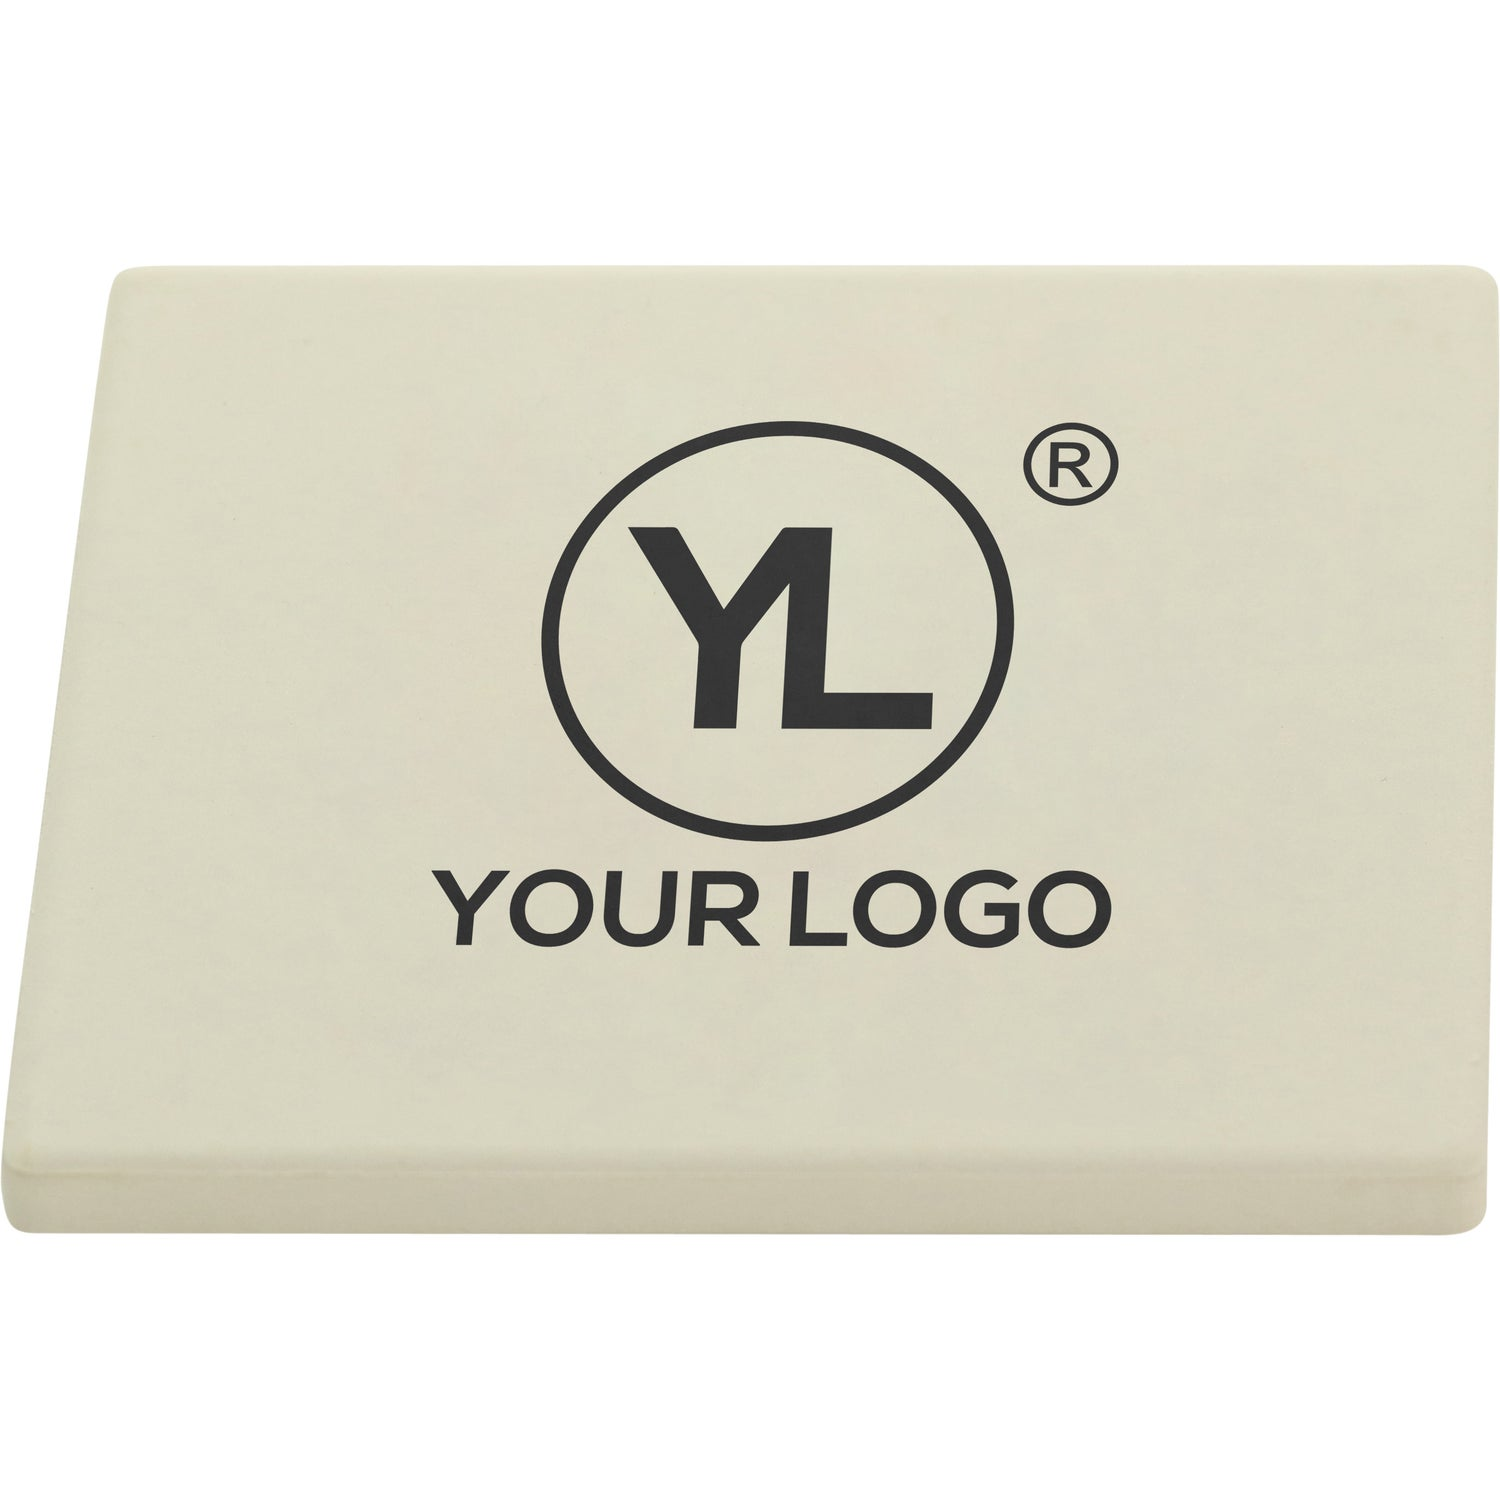 promotional square absorbent stone coasters with custom logo for 1 26 ea